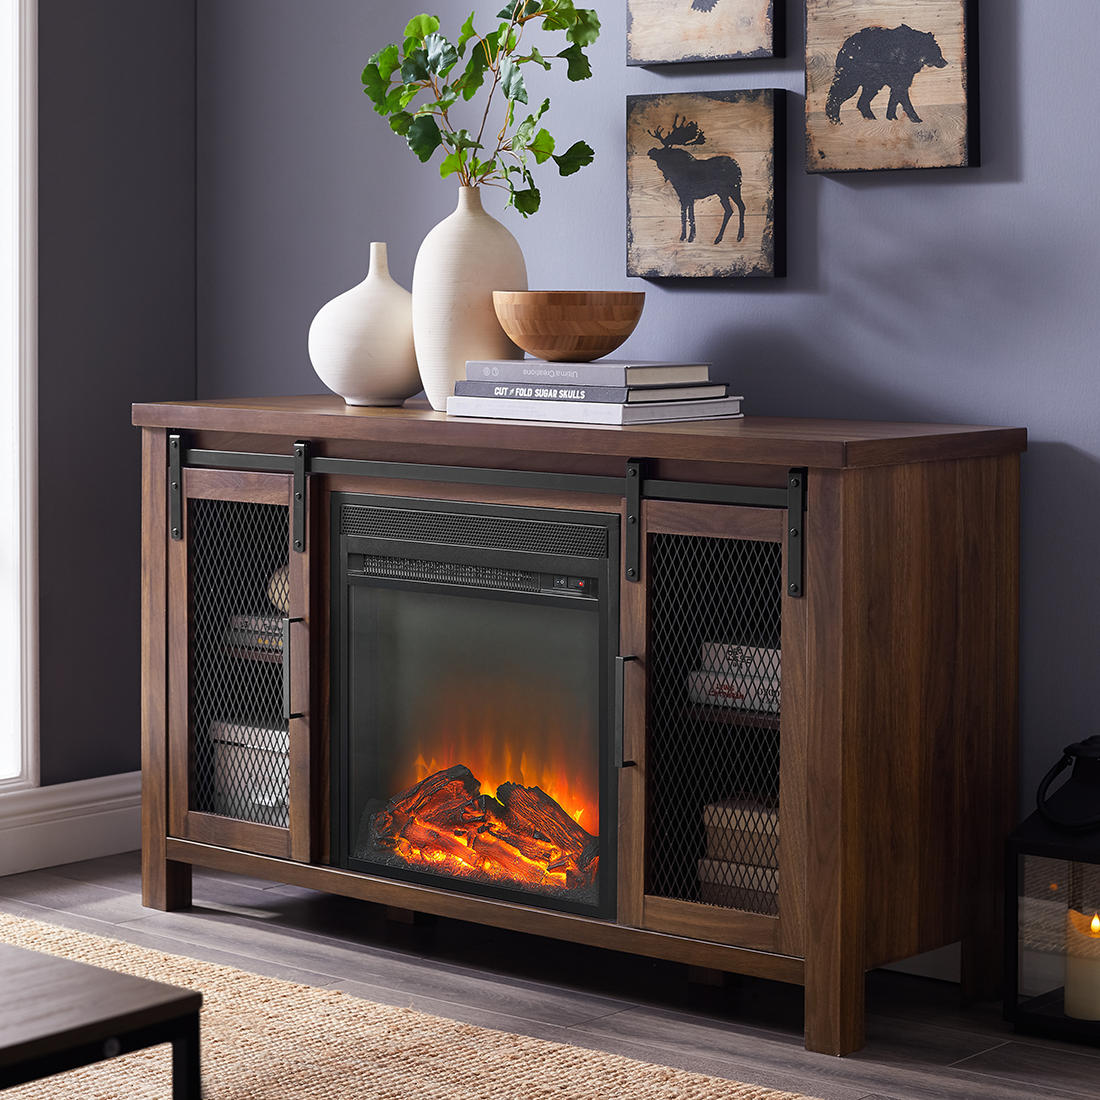 W Trends 48 Farmhouse Sliding Door Fireplace Tv Stand For Most Tv S Up To 55 Dark Walnut Bjs Wholesale Club